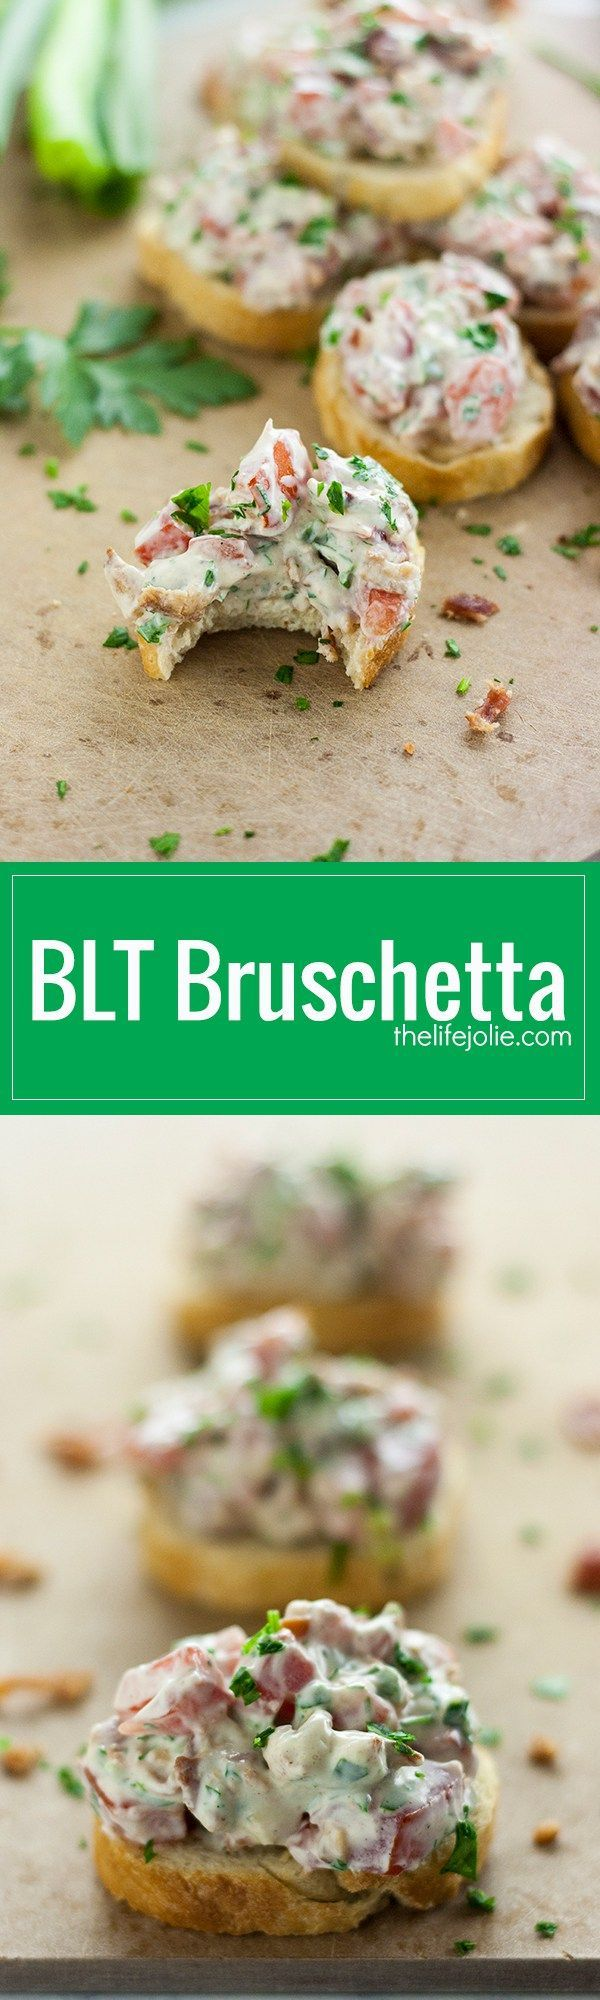 This BLT Bruschetta recipe is the perfect dish-to-pass for a last minute get together, party or game day celebration. Tomatoes, bacon, parsley and green onions come together in a creamy mixture and are spread atop crispy slices of baguette. This delicious